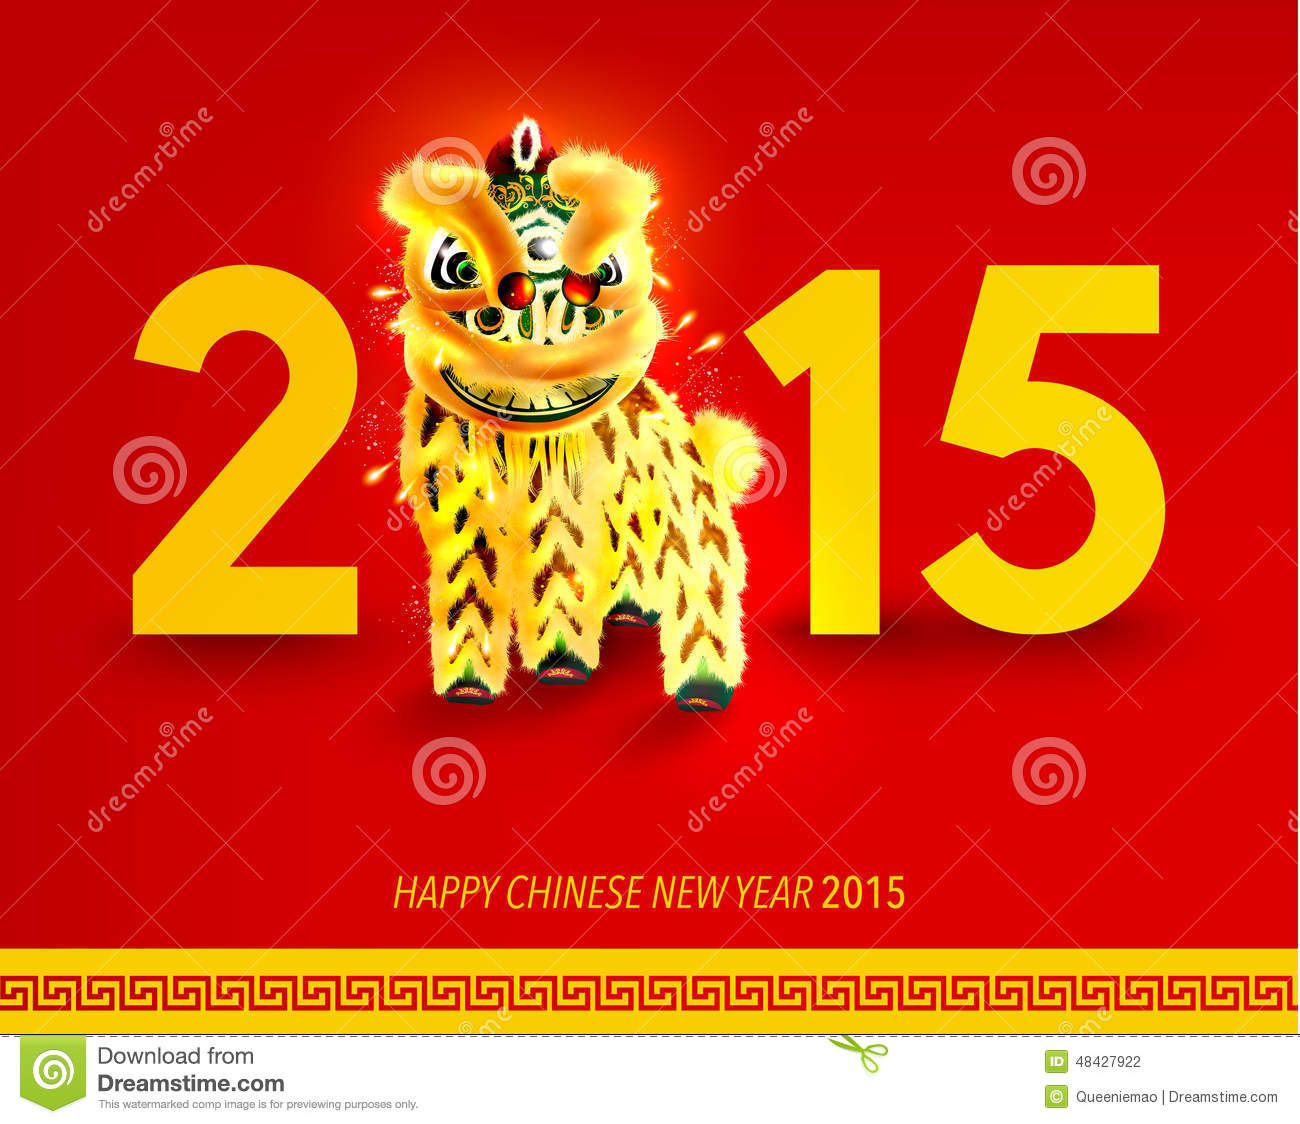 Happy 2015 Chinese New Year Of The Goat Greeting Card ...  Happy Chinese New Year 2015